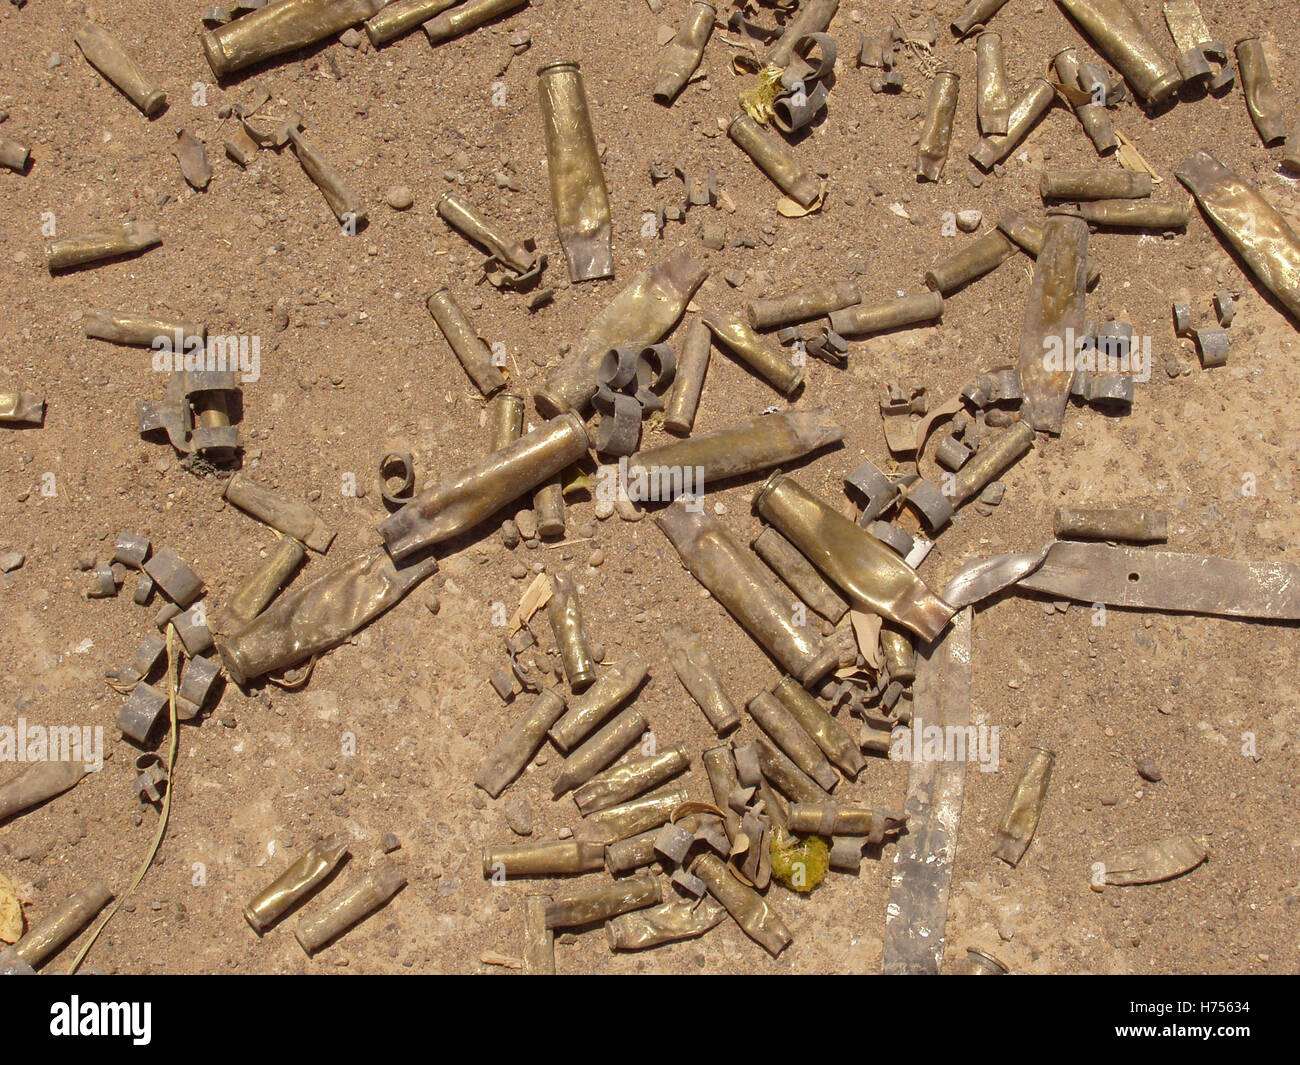 24th July 2003 Spent cartridges on the ground near to the parade ground inside the International (Green) Zone in - Stock Image